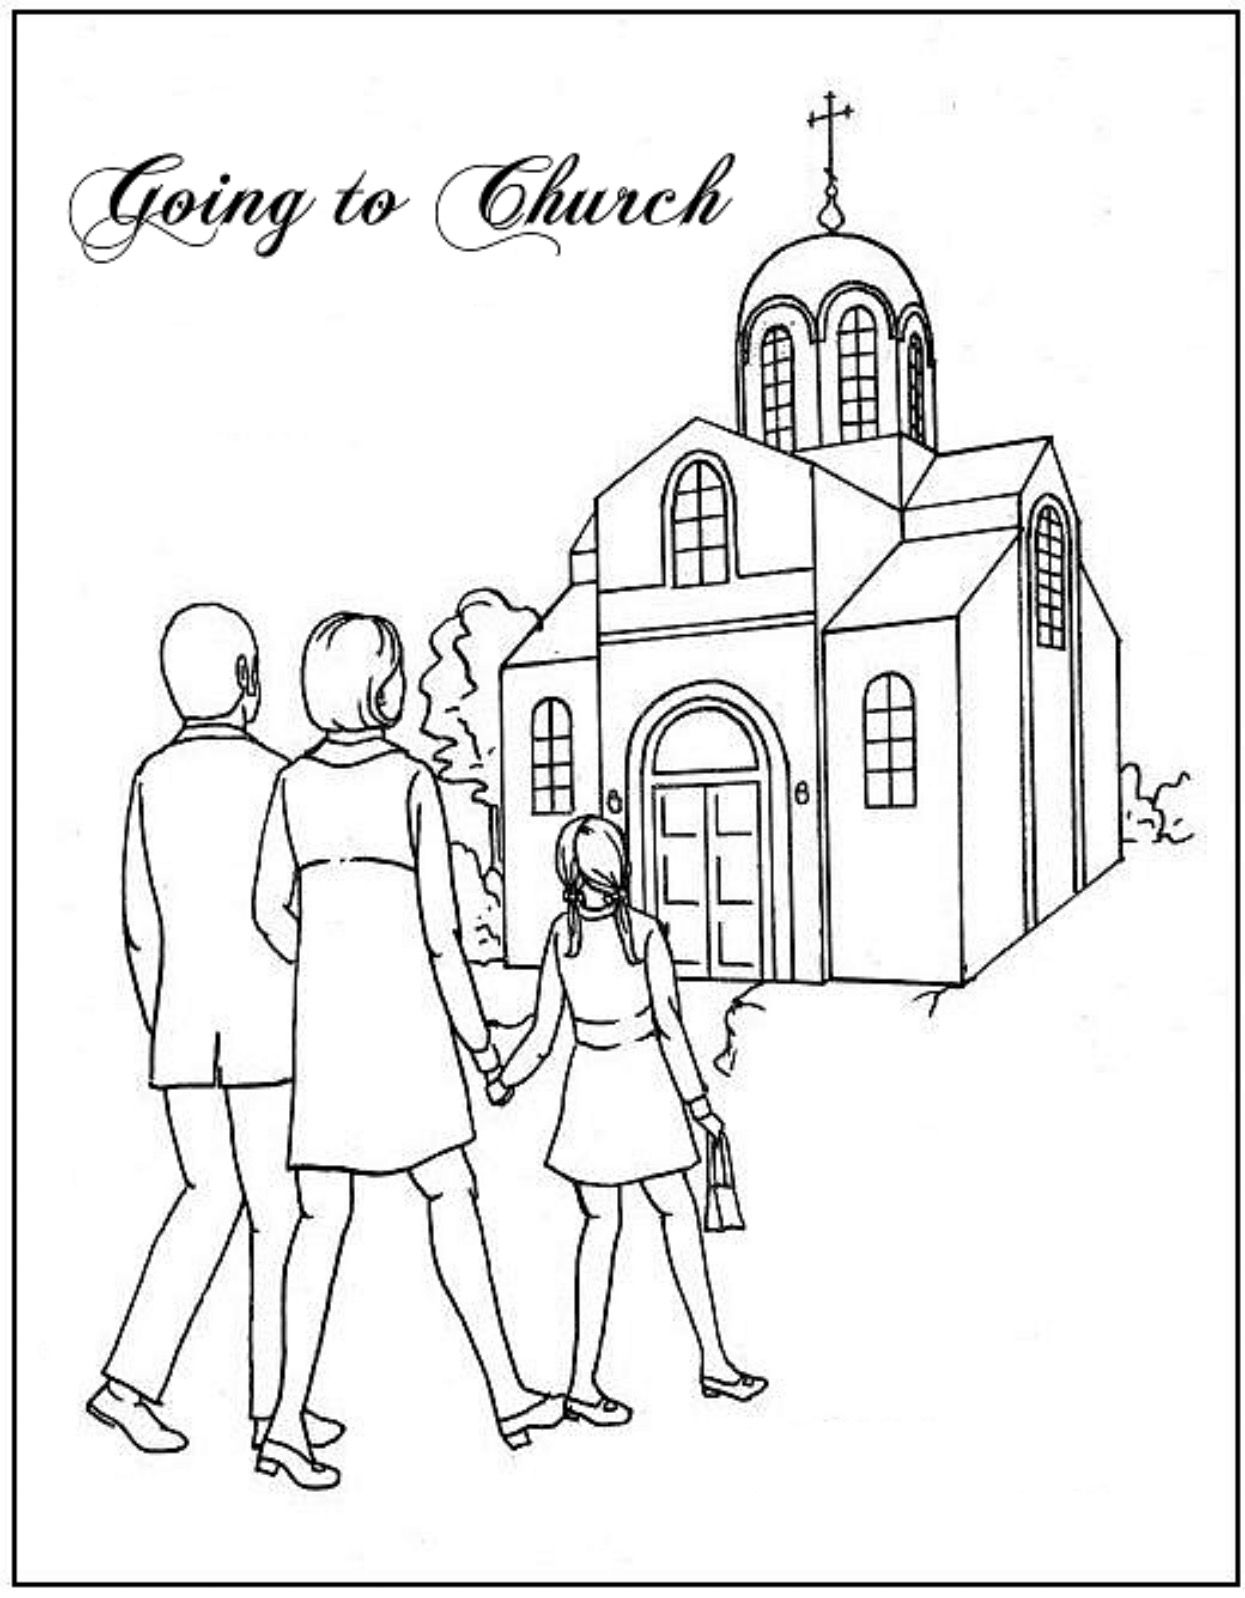 Going To Church Coloring Page Eastern Orthodox Church Orthodox Catholic Coloring Pages